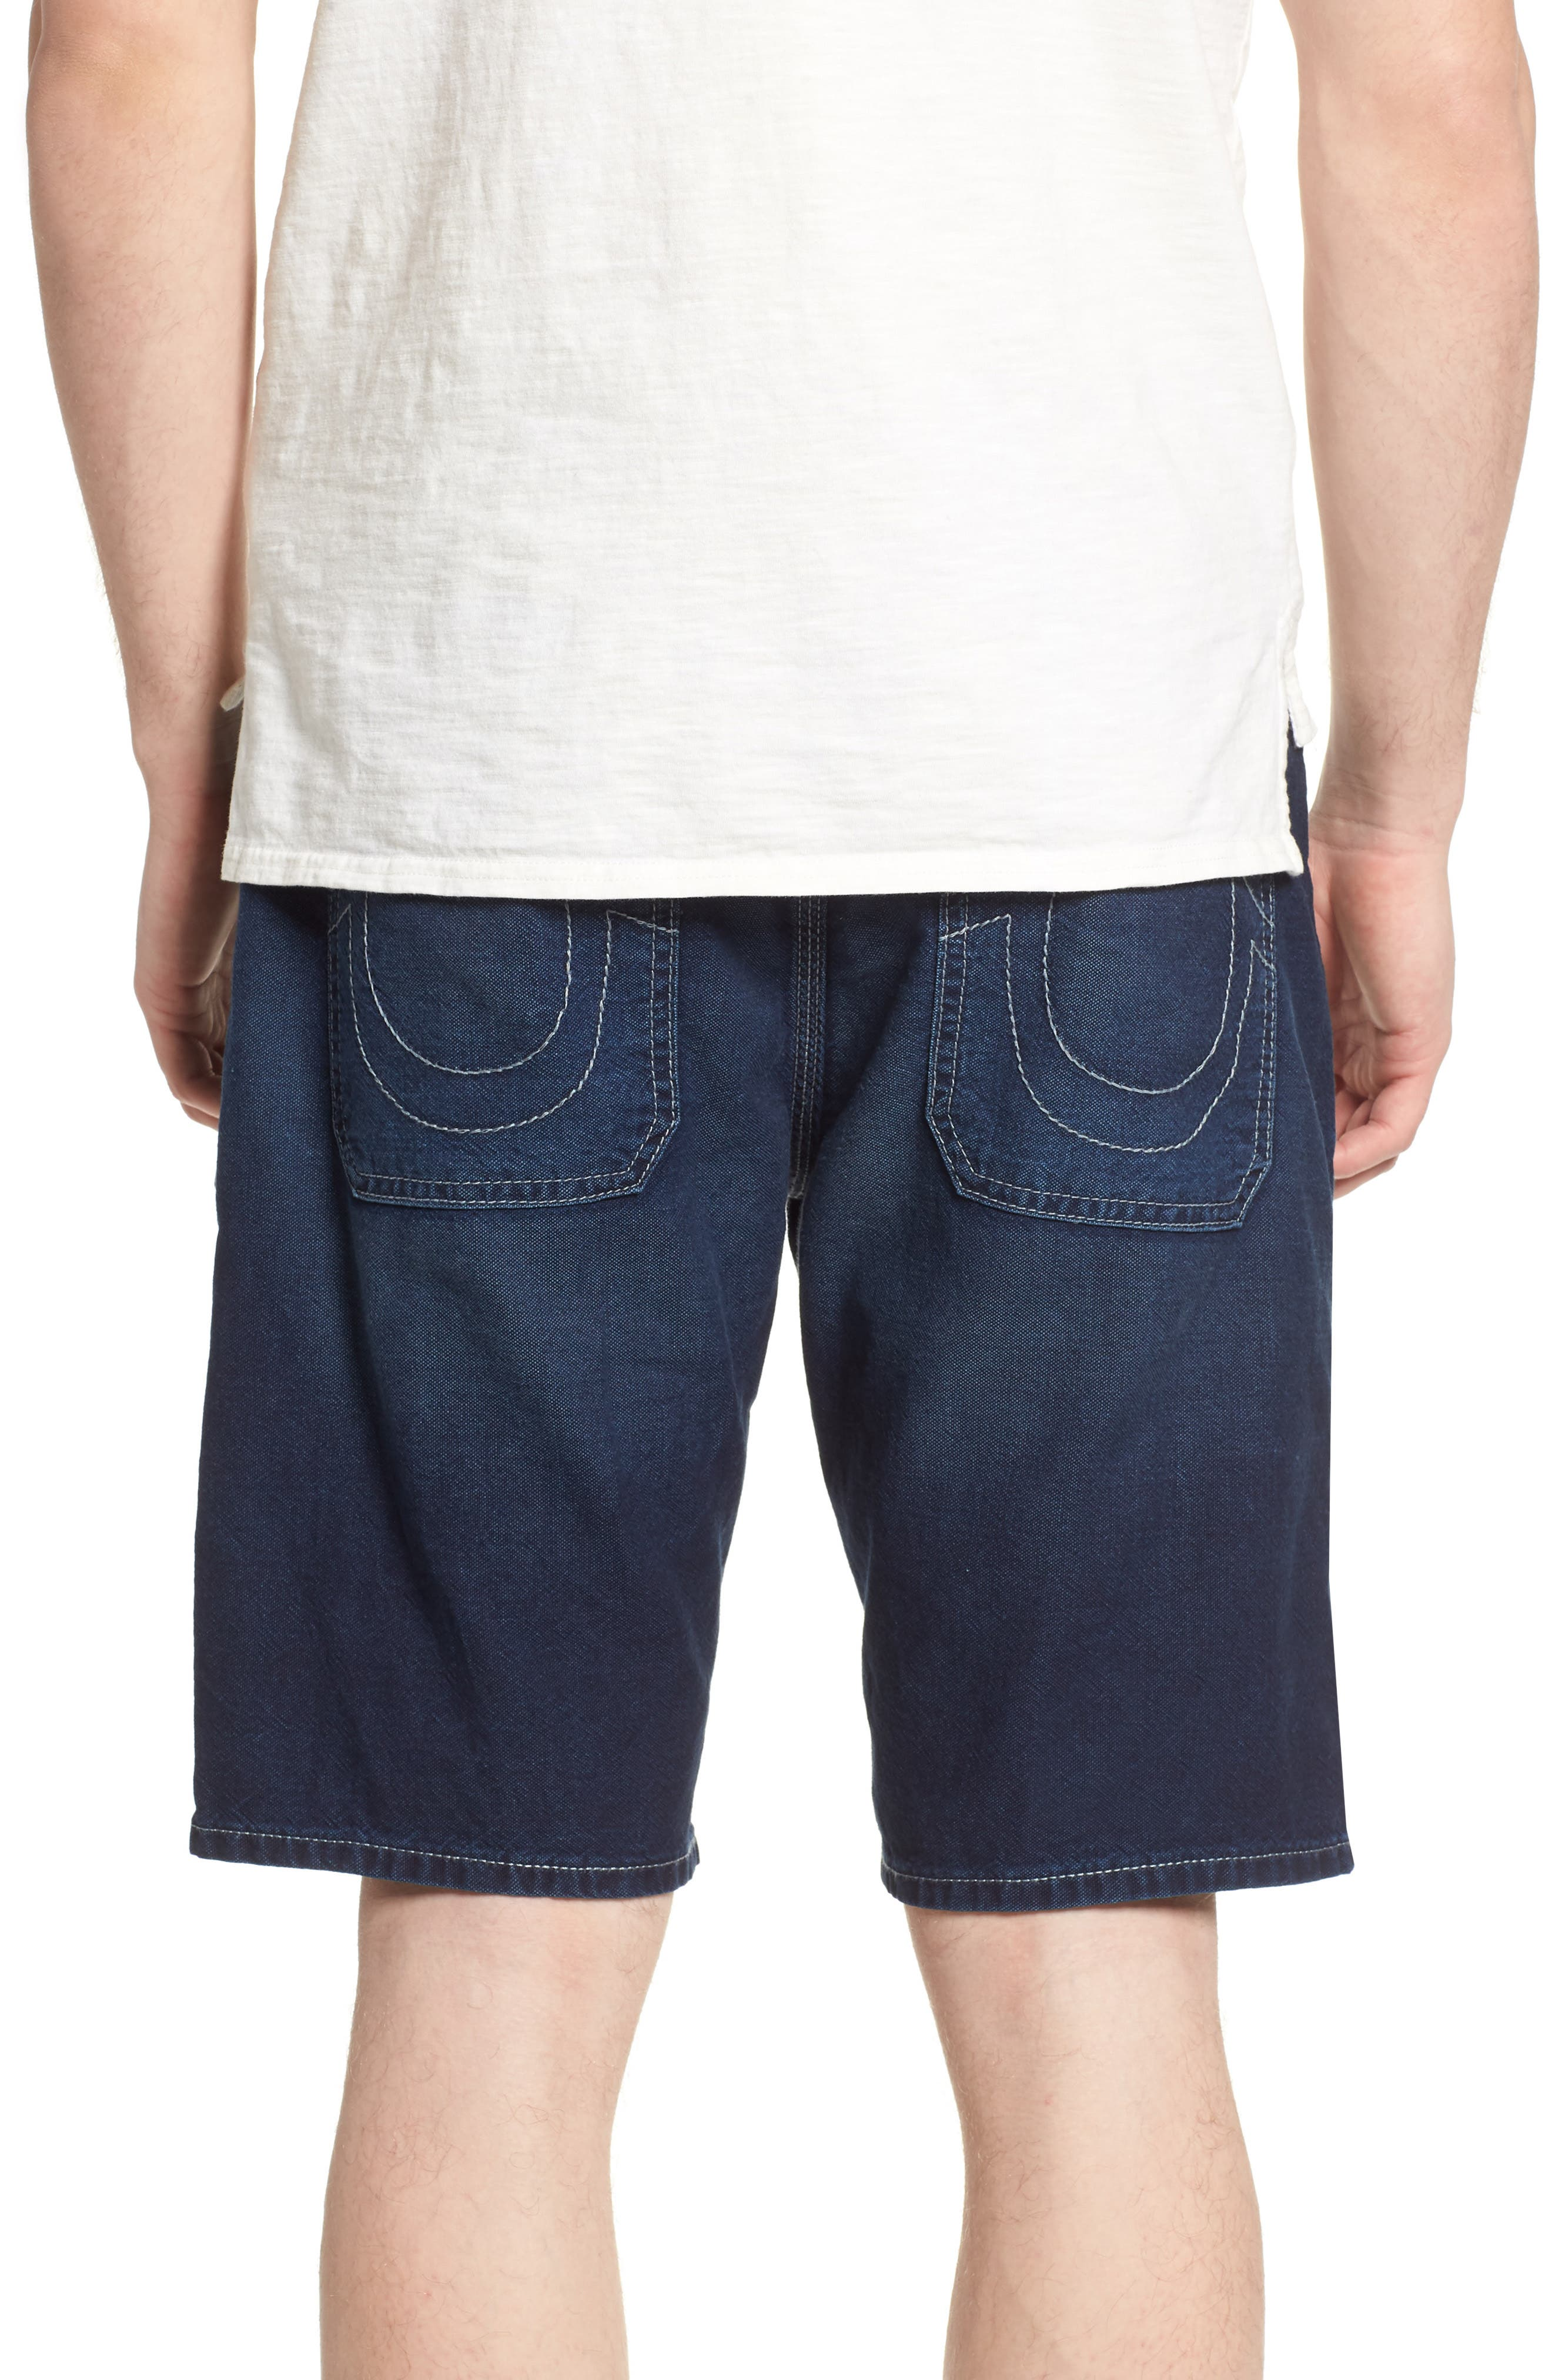 Trail Utility Shorts,                             Alternate thumbnail 2, color,                             UNION SPECIAL